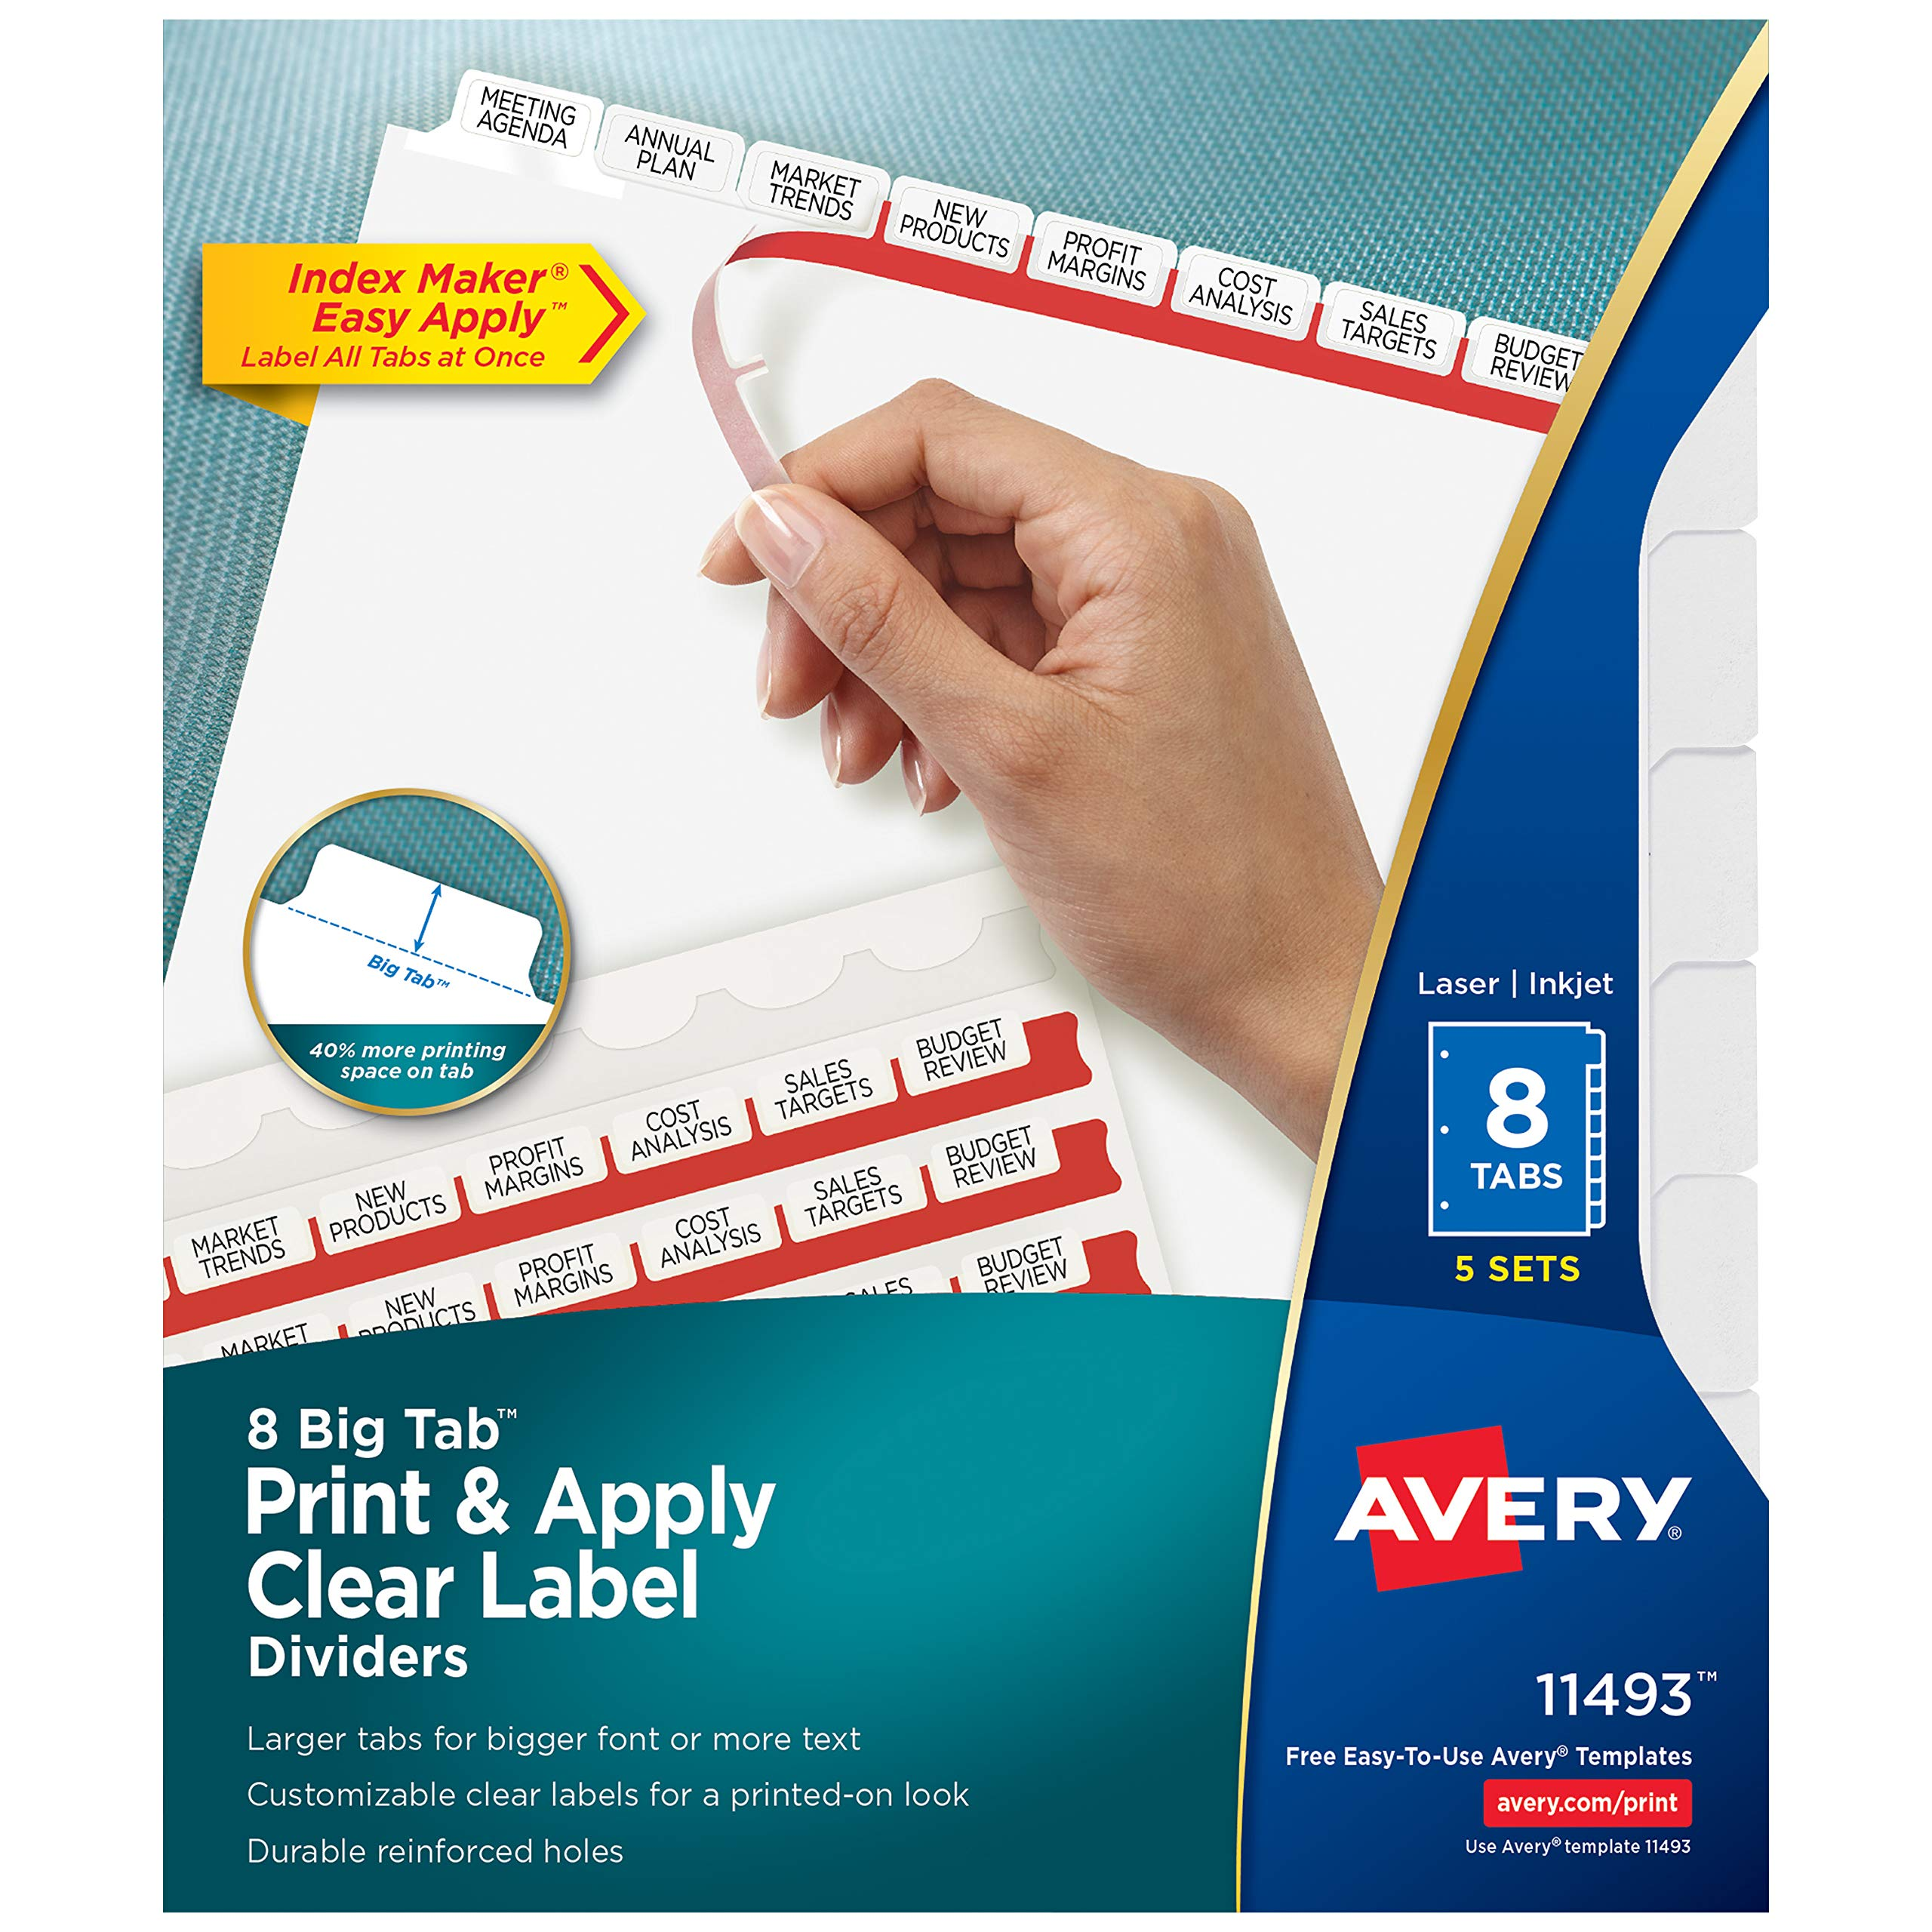 Avery 8 Big Tab Binder Dividers, Easy Print & Apply Clear Label Strip, Index Maker, White Tabs, 5 Sets (11493) by AVERY